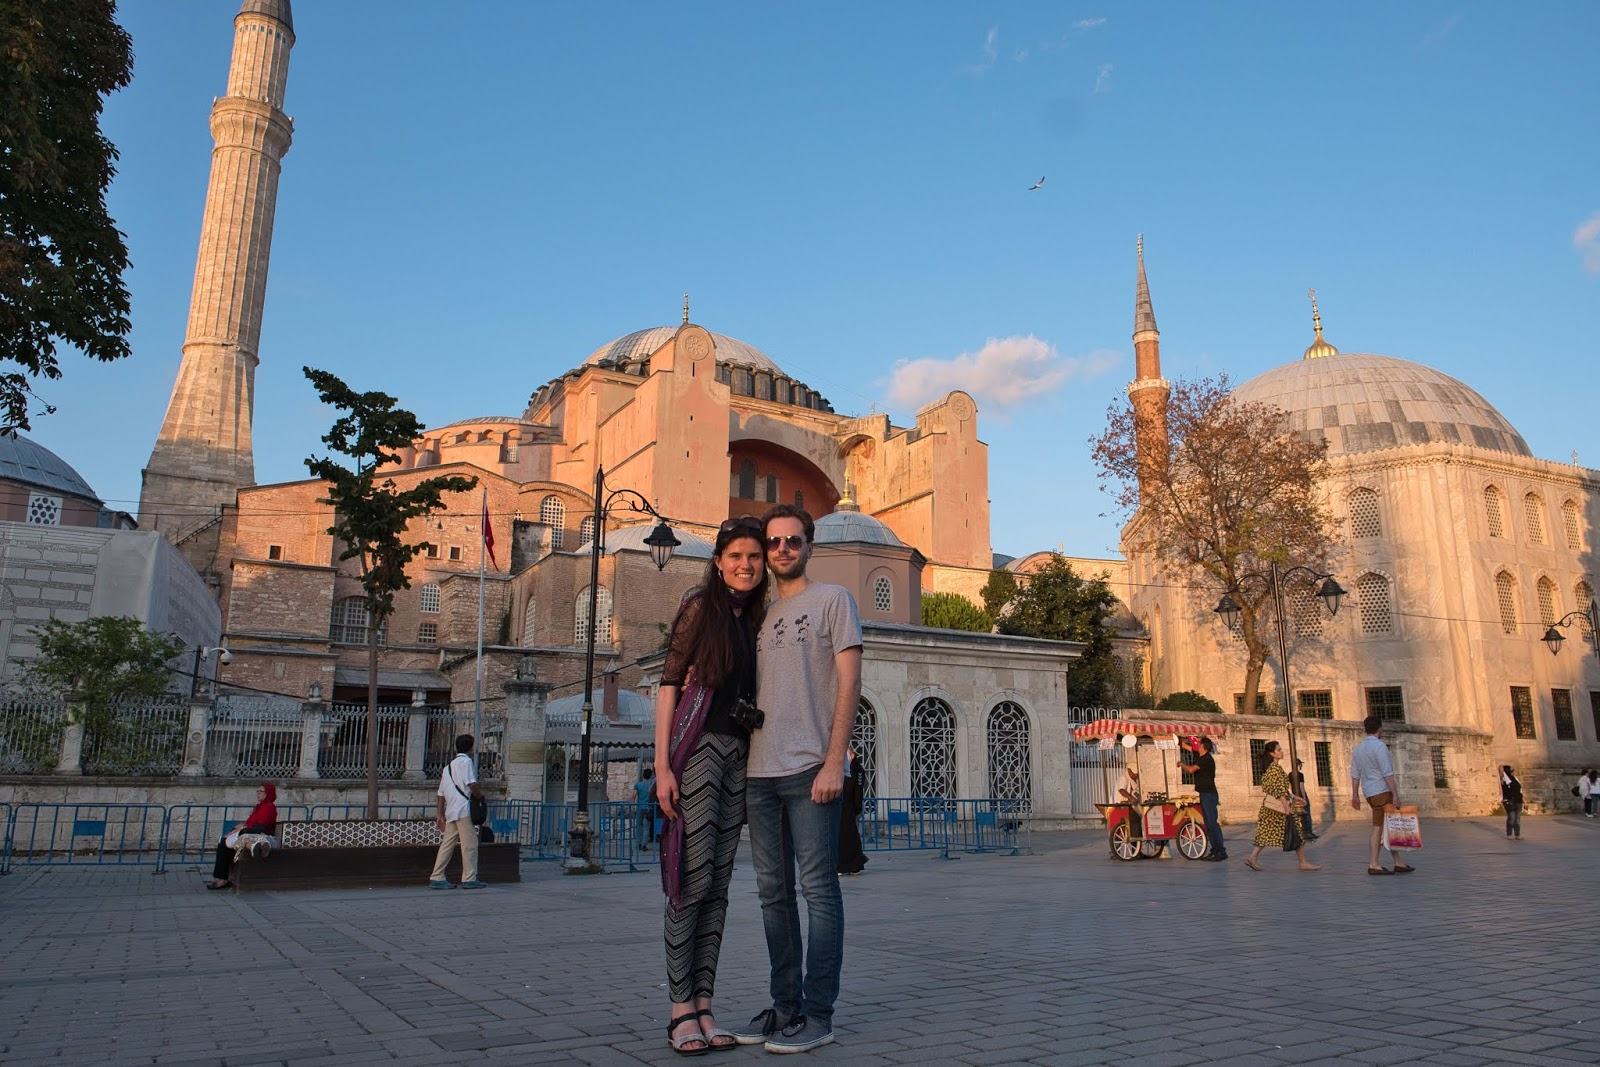 Kat Last and Stuart in front of the Hagia Sophia Museum in Istanbul, Turkey